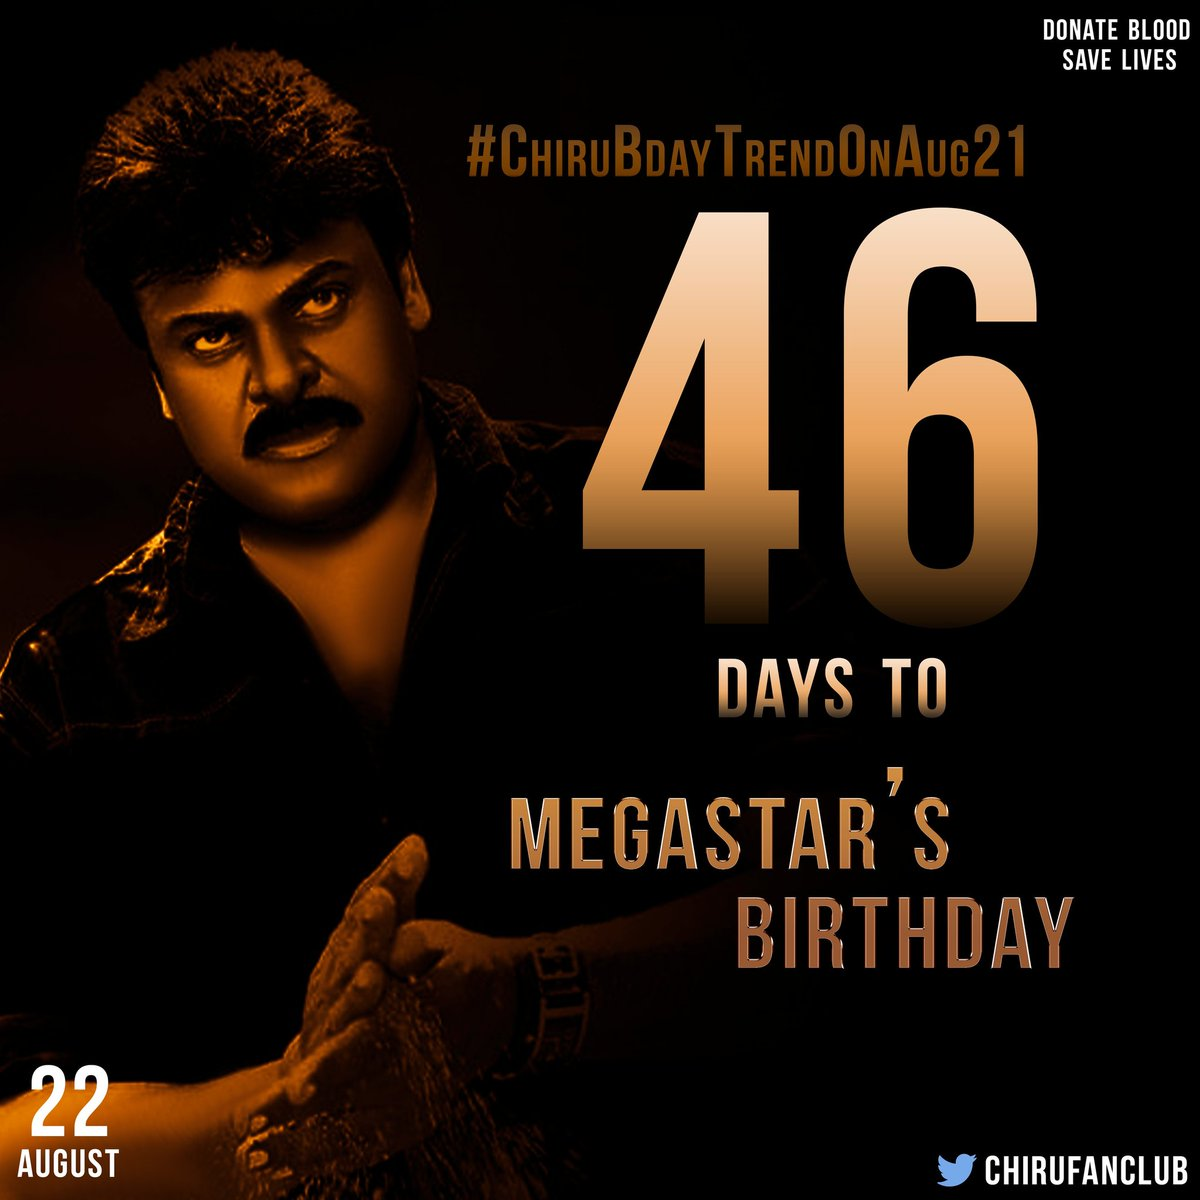 More 46 Day's to go for our Boss @KChiruTweets Birthday #MegastarChiranjeevi  #ChiruBdayTrendOnAug21pic.twitter.com/JD89CDLeEo